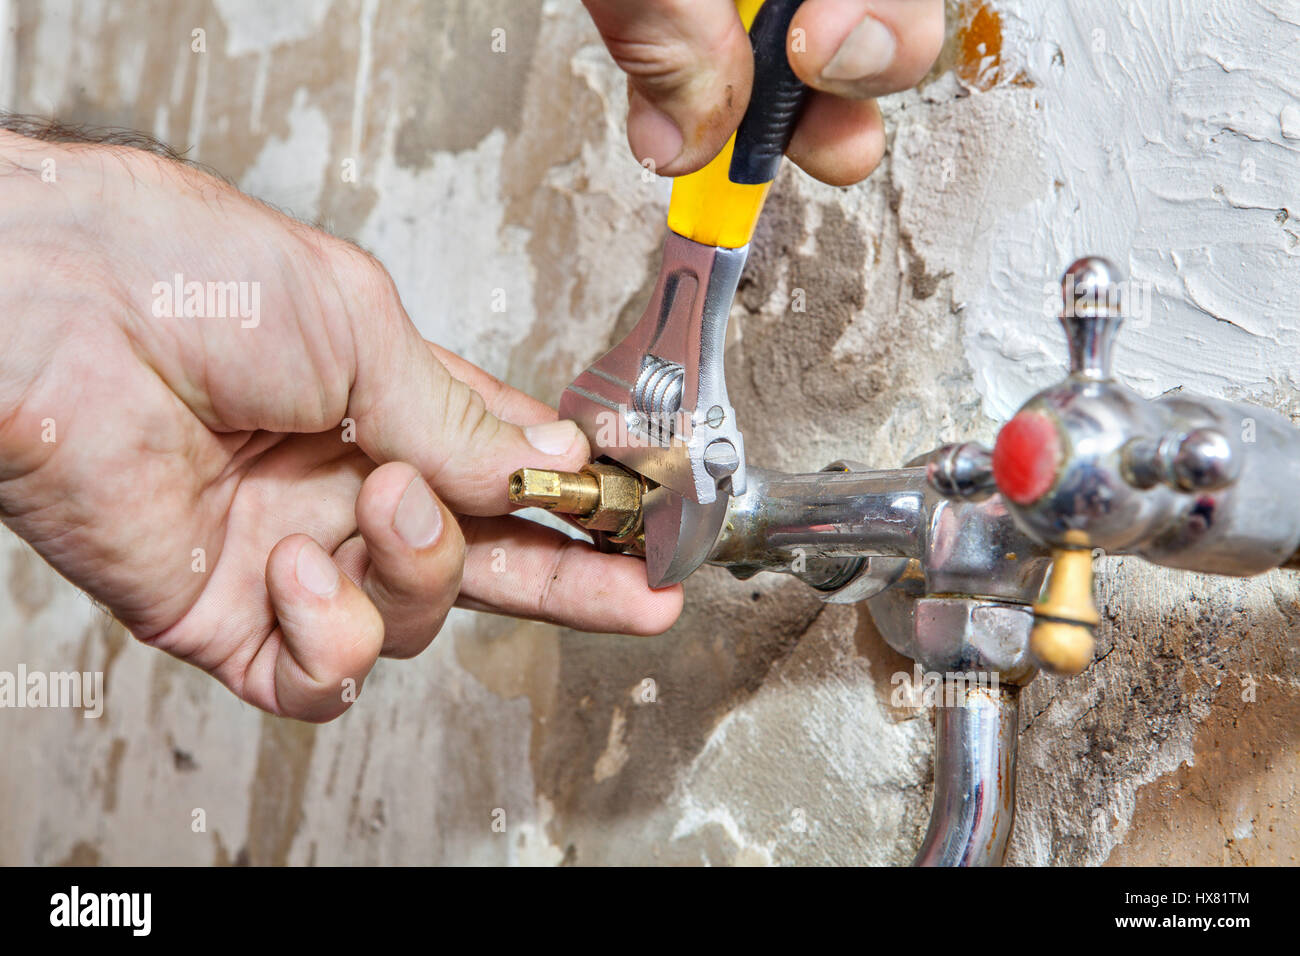 Kitchen faucet repair,  valve tap replacement, close-up adjustable wrench in hand plumbing. Stock Photo